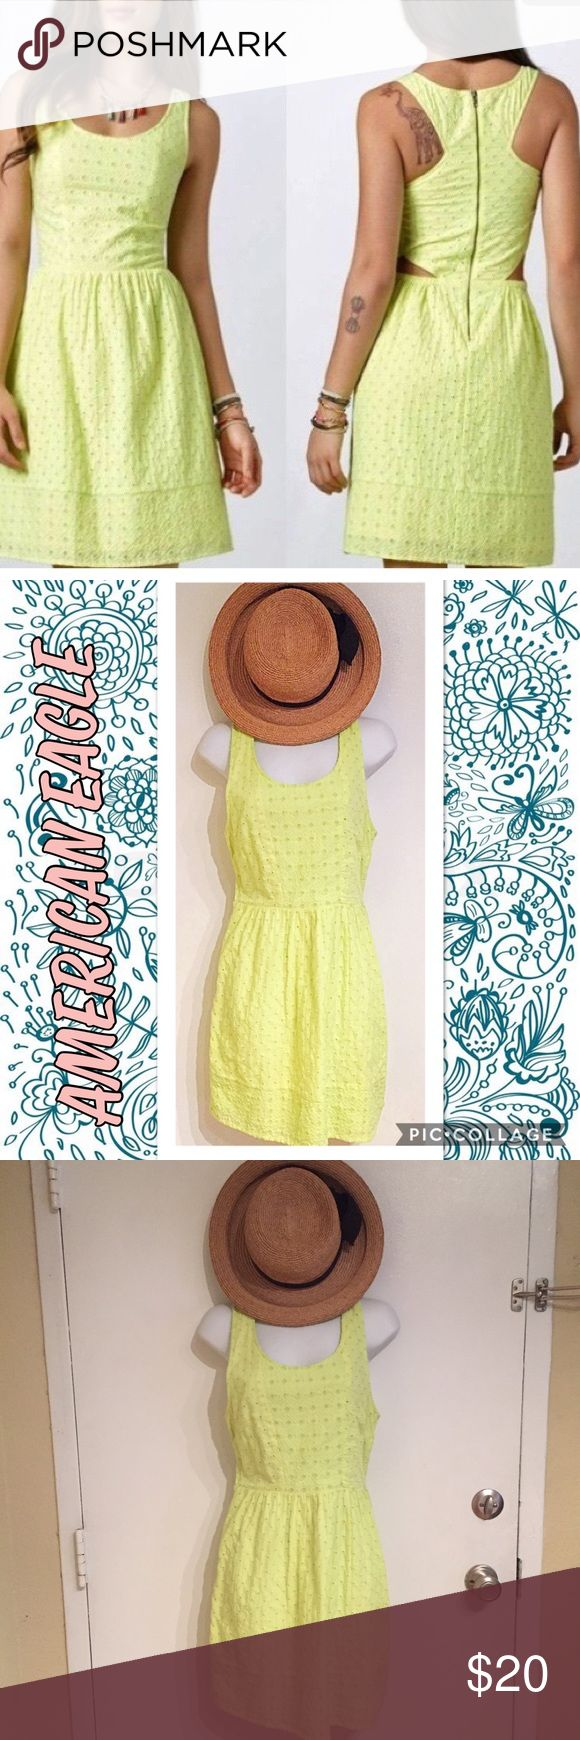 American Eagle Outfitters Yellow Eyelet Dress American Eagle Outfitters highlighter/neon yellow Eyelet dress. Has cutouts on the side/back. Size 4.  #americaneagle #americaneagleoutfitters #aeo #neon #yellow #highlighter #eyelet #bright #spring #dress #punkydoodle  No modeling Smoke free home I do discount bundles American Eagle Outfitters Dresses